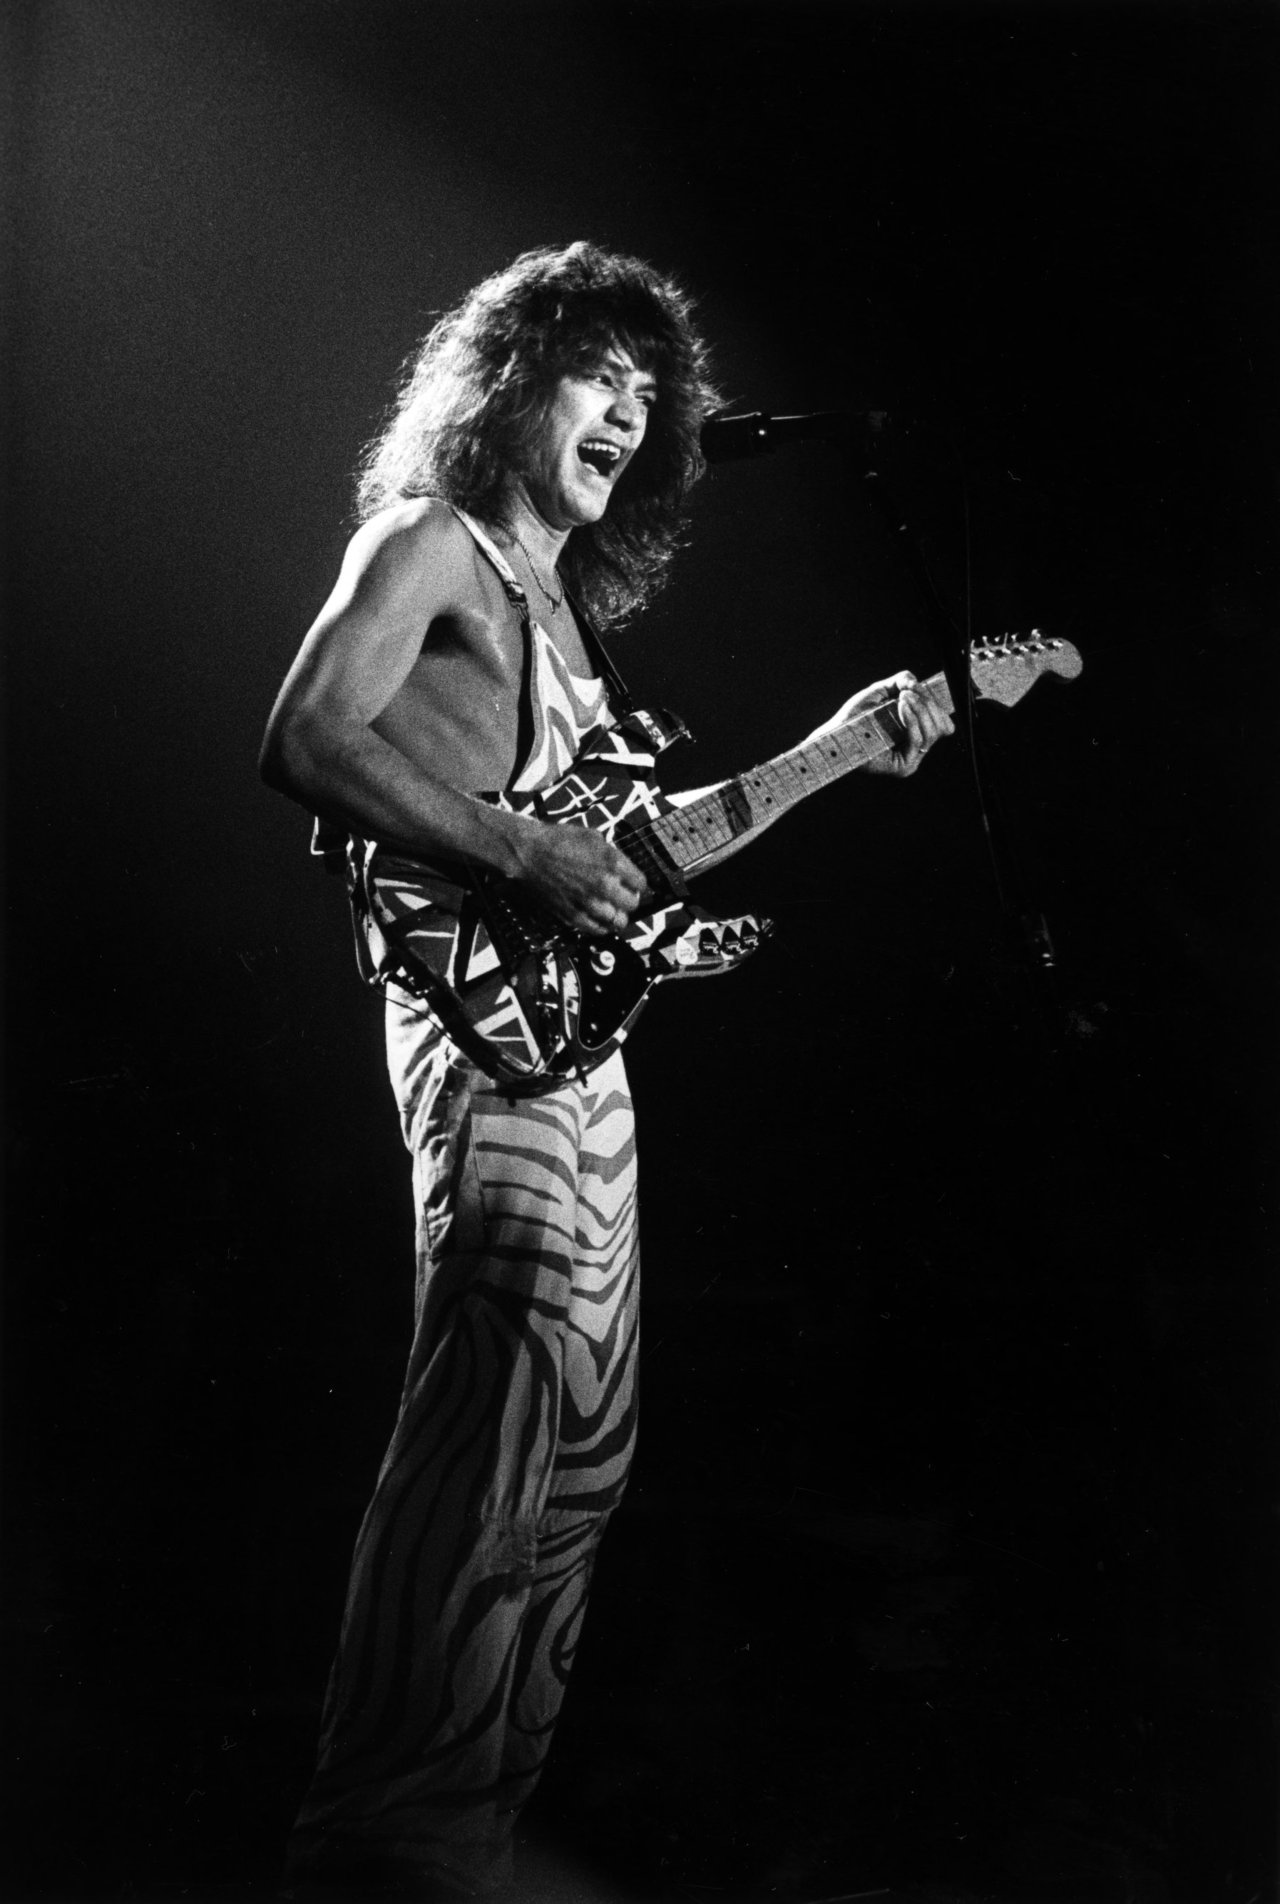 Eddie van halen wallpaper wallpapersafari - Van halen hd wallpaper ...